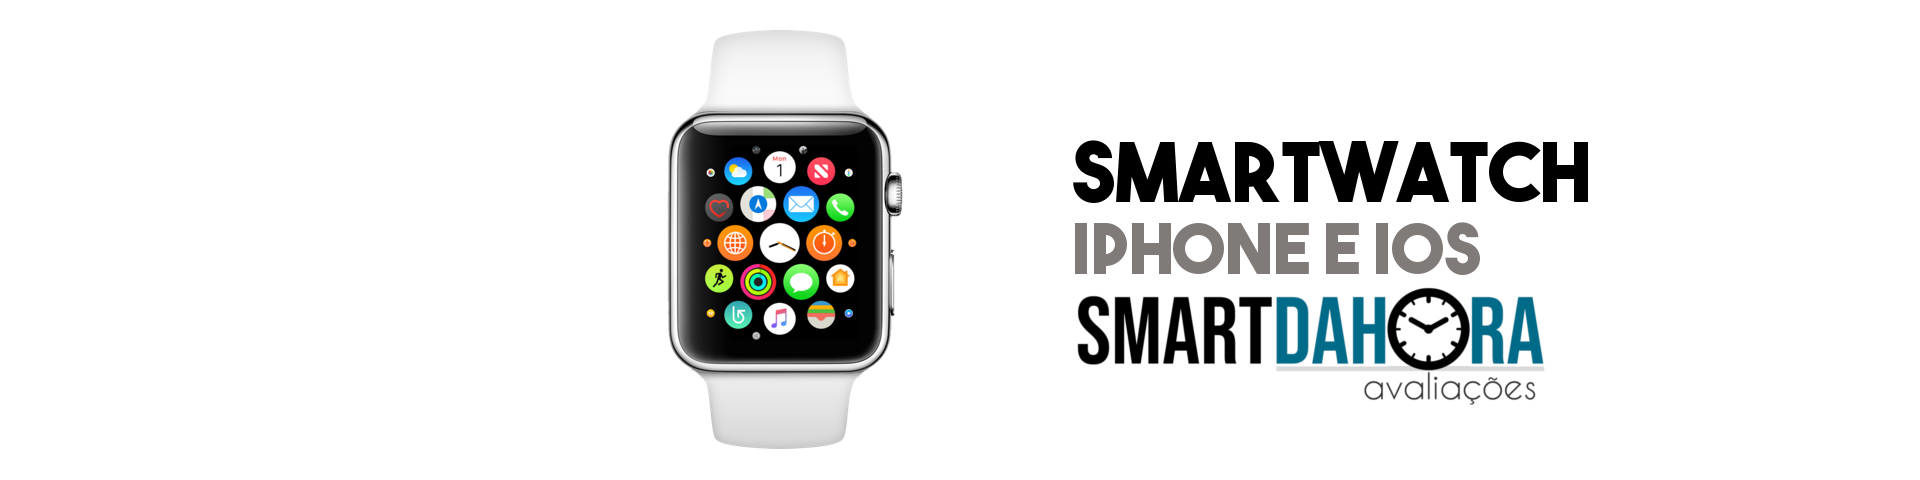 smartwatch compativel com iphone e ios